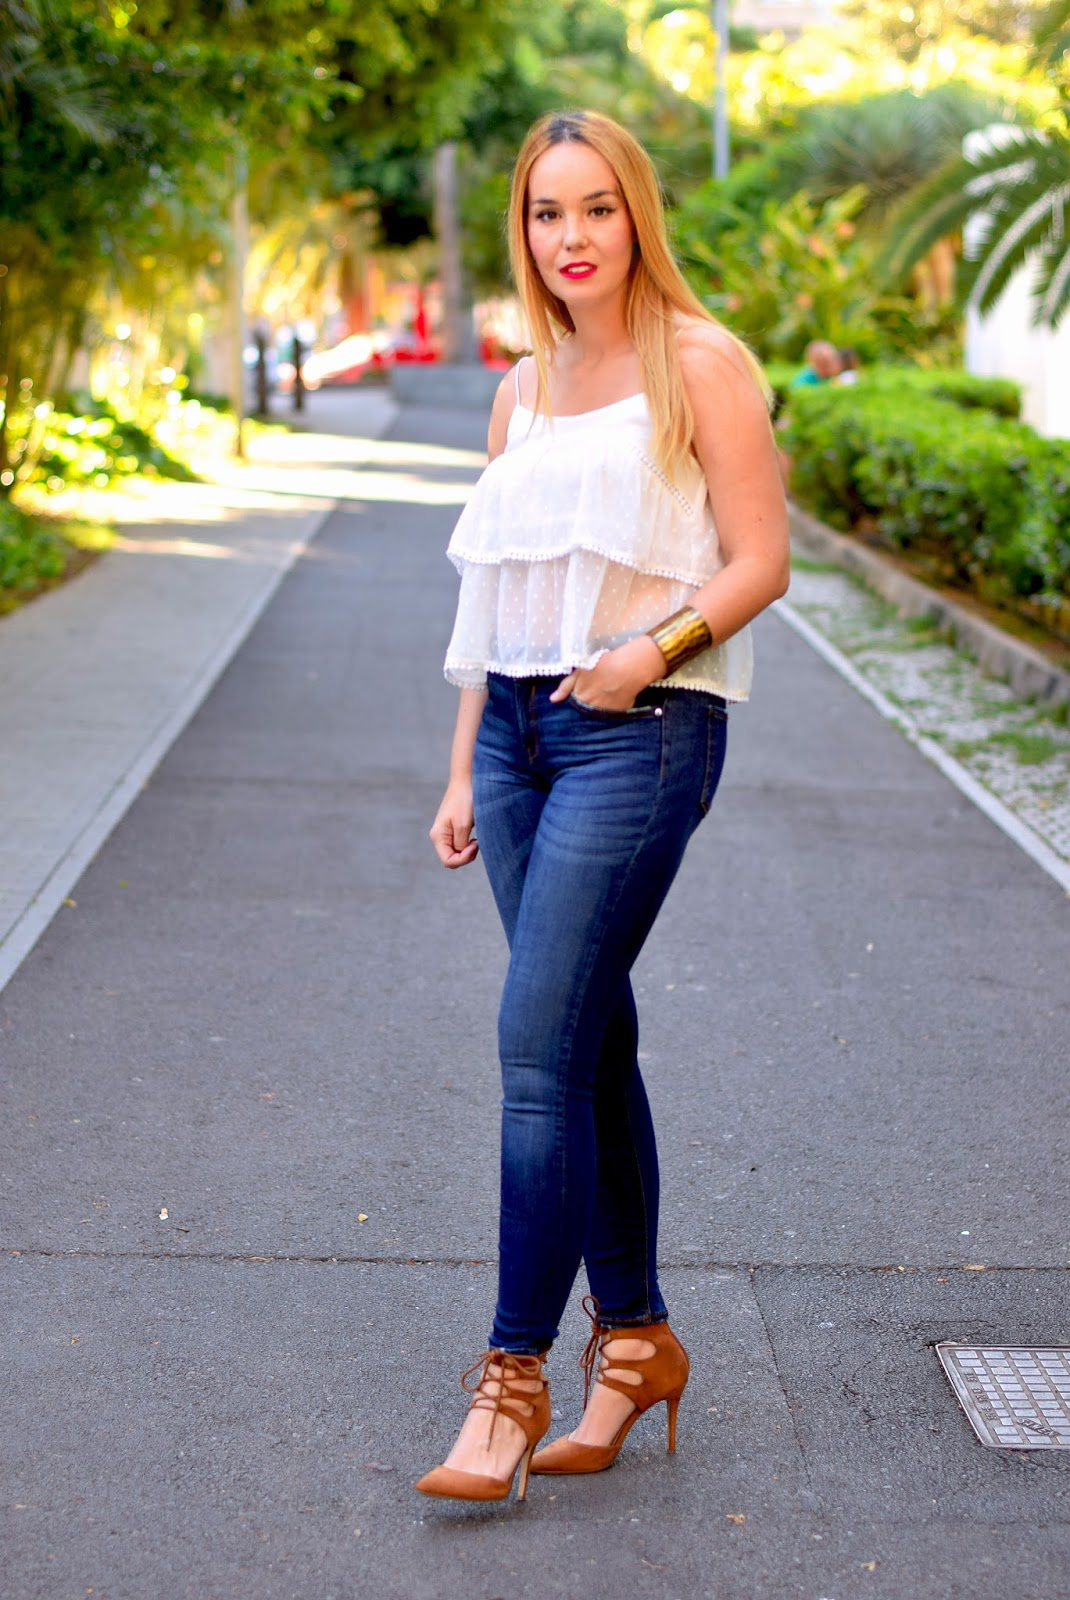 nery hdez, jeans, blonde fashionblogger, crop top, stradivarius top, amiclubwear